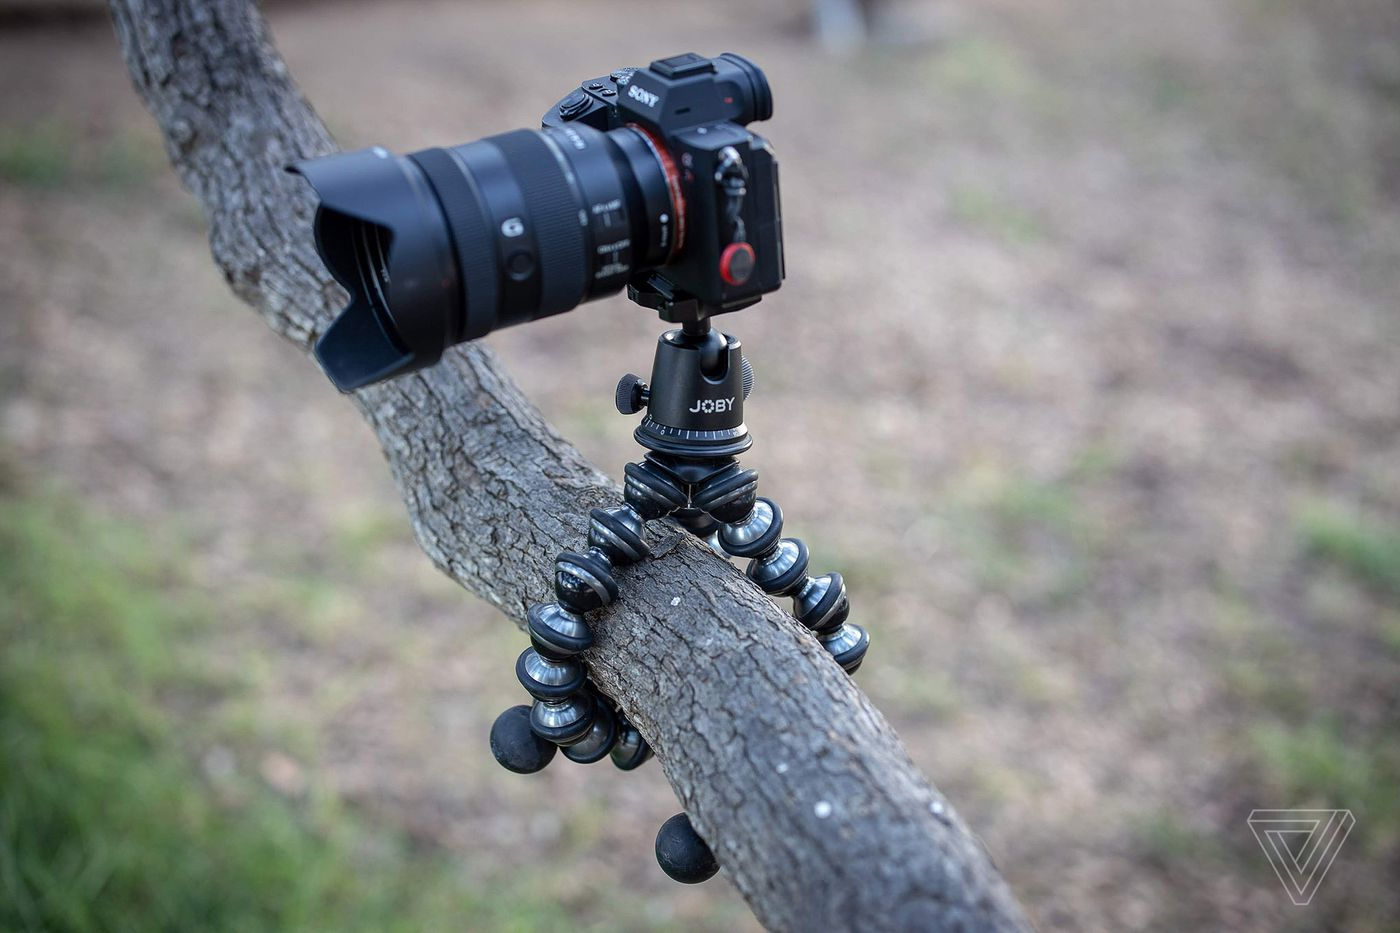 How to build a camera kit for adventure photography - The Verge